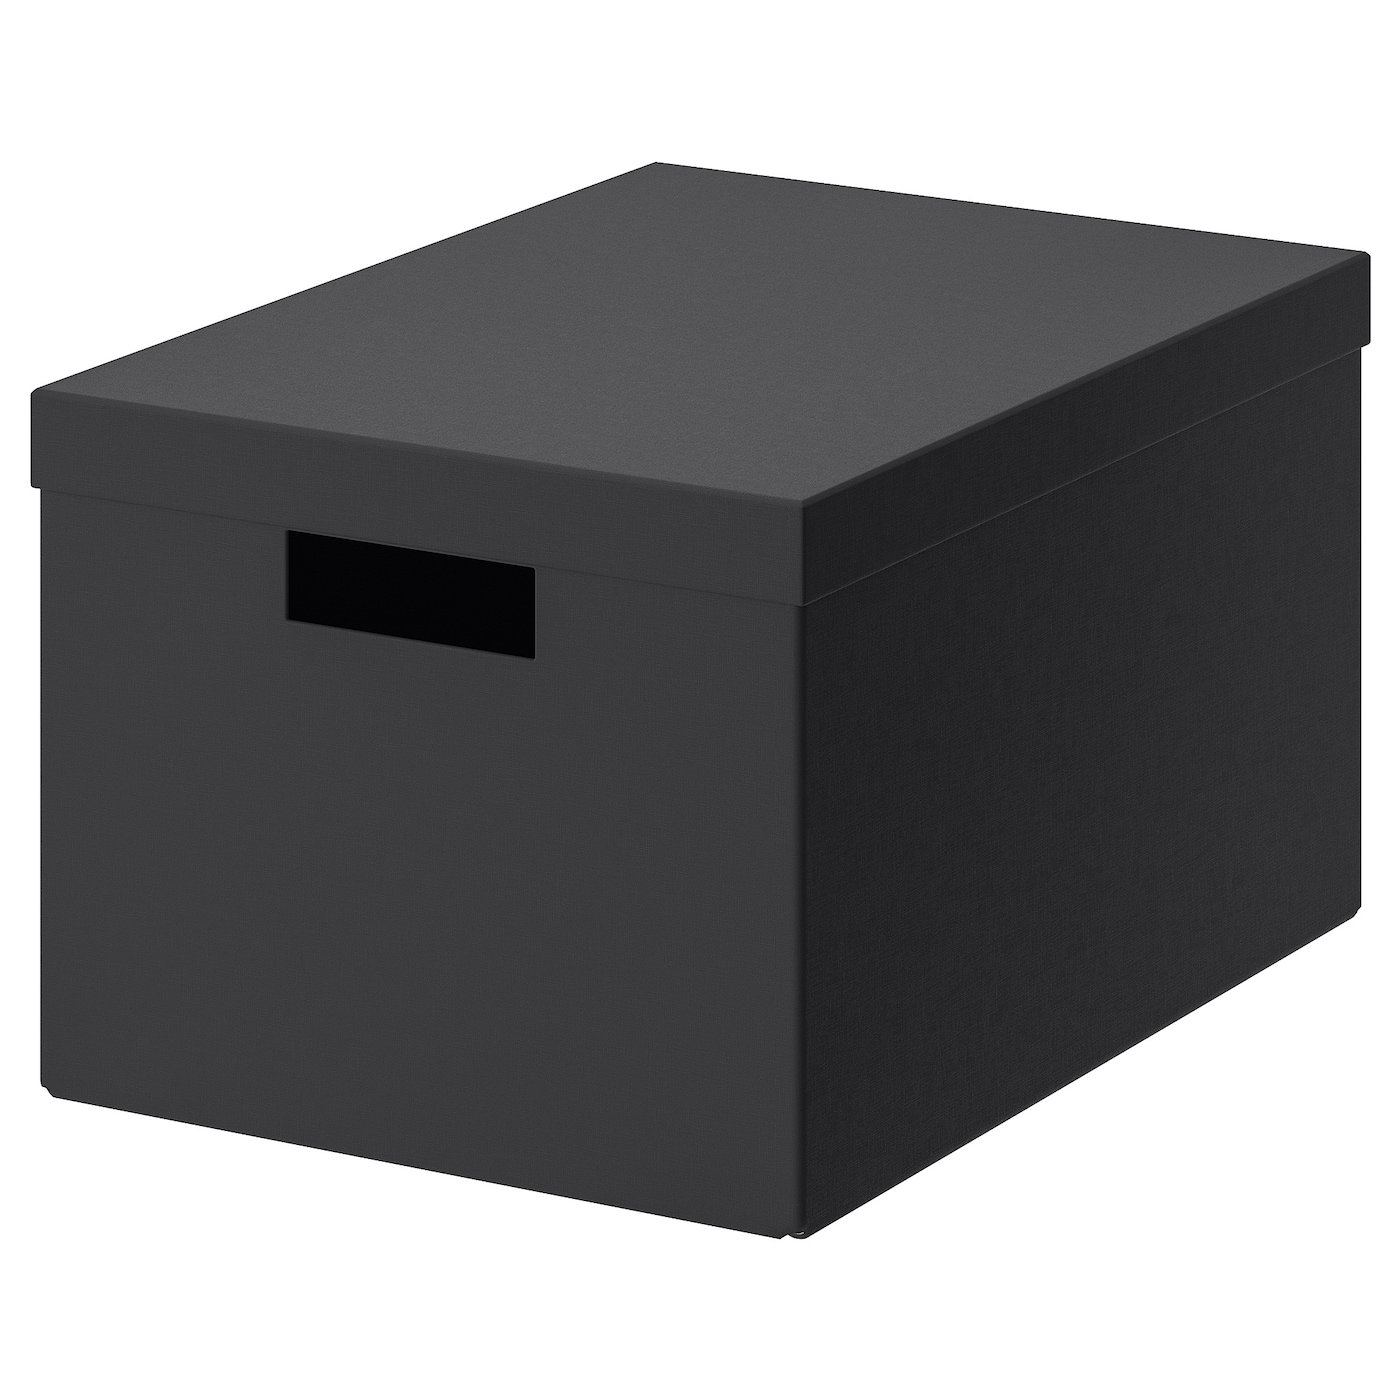 TJENA black, Storage box with lid, 25x35x20 cm - IKEA